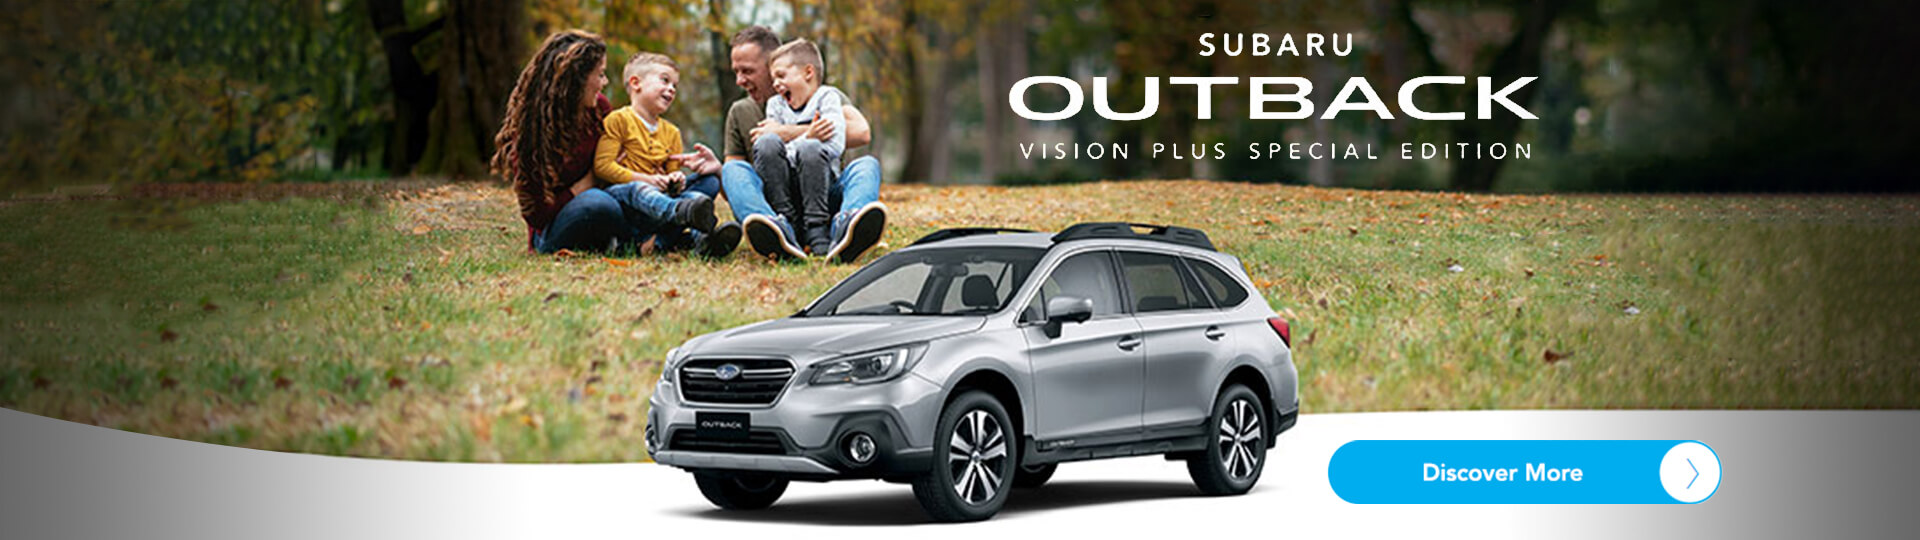 Geoff King Motors Subaru offers